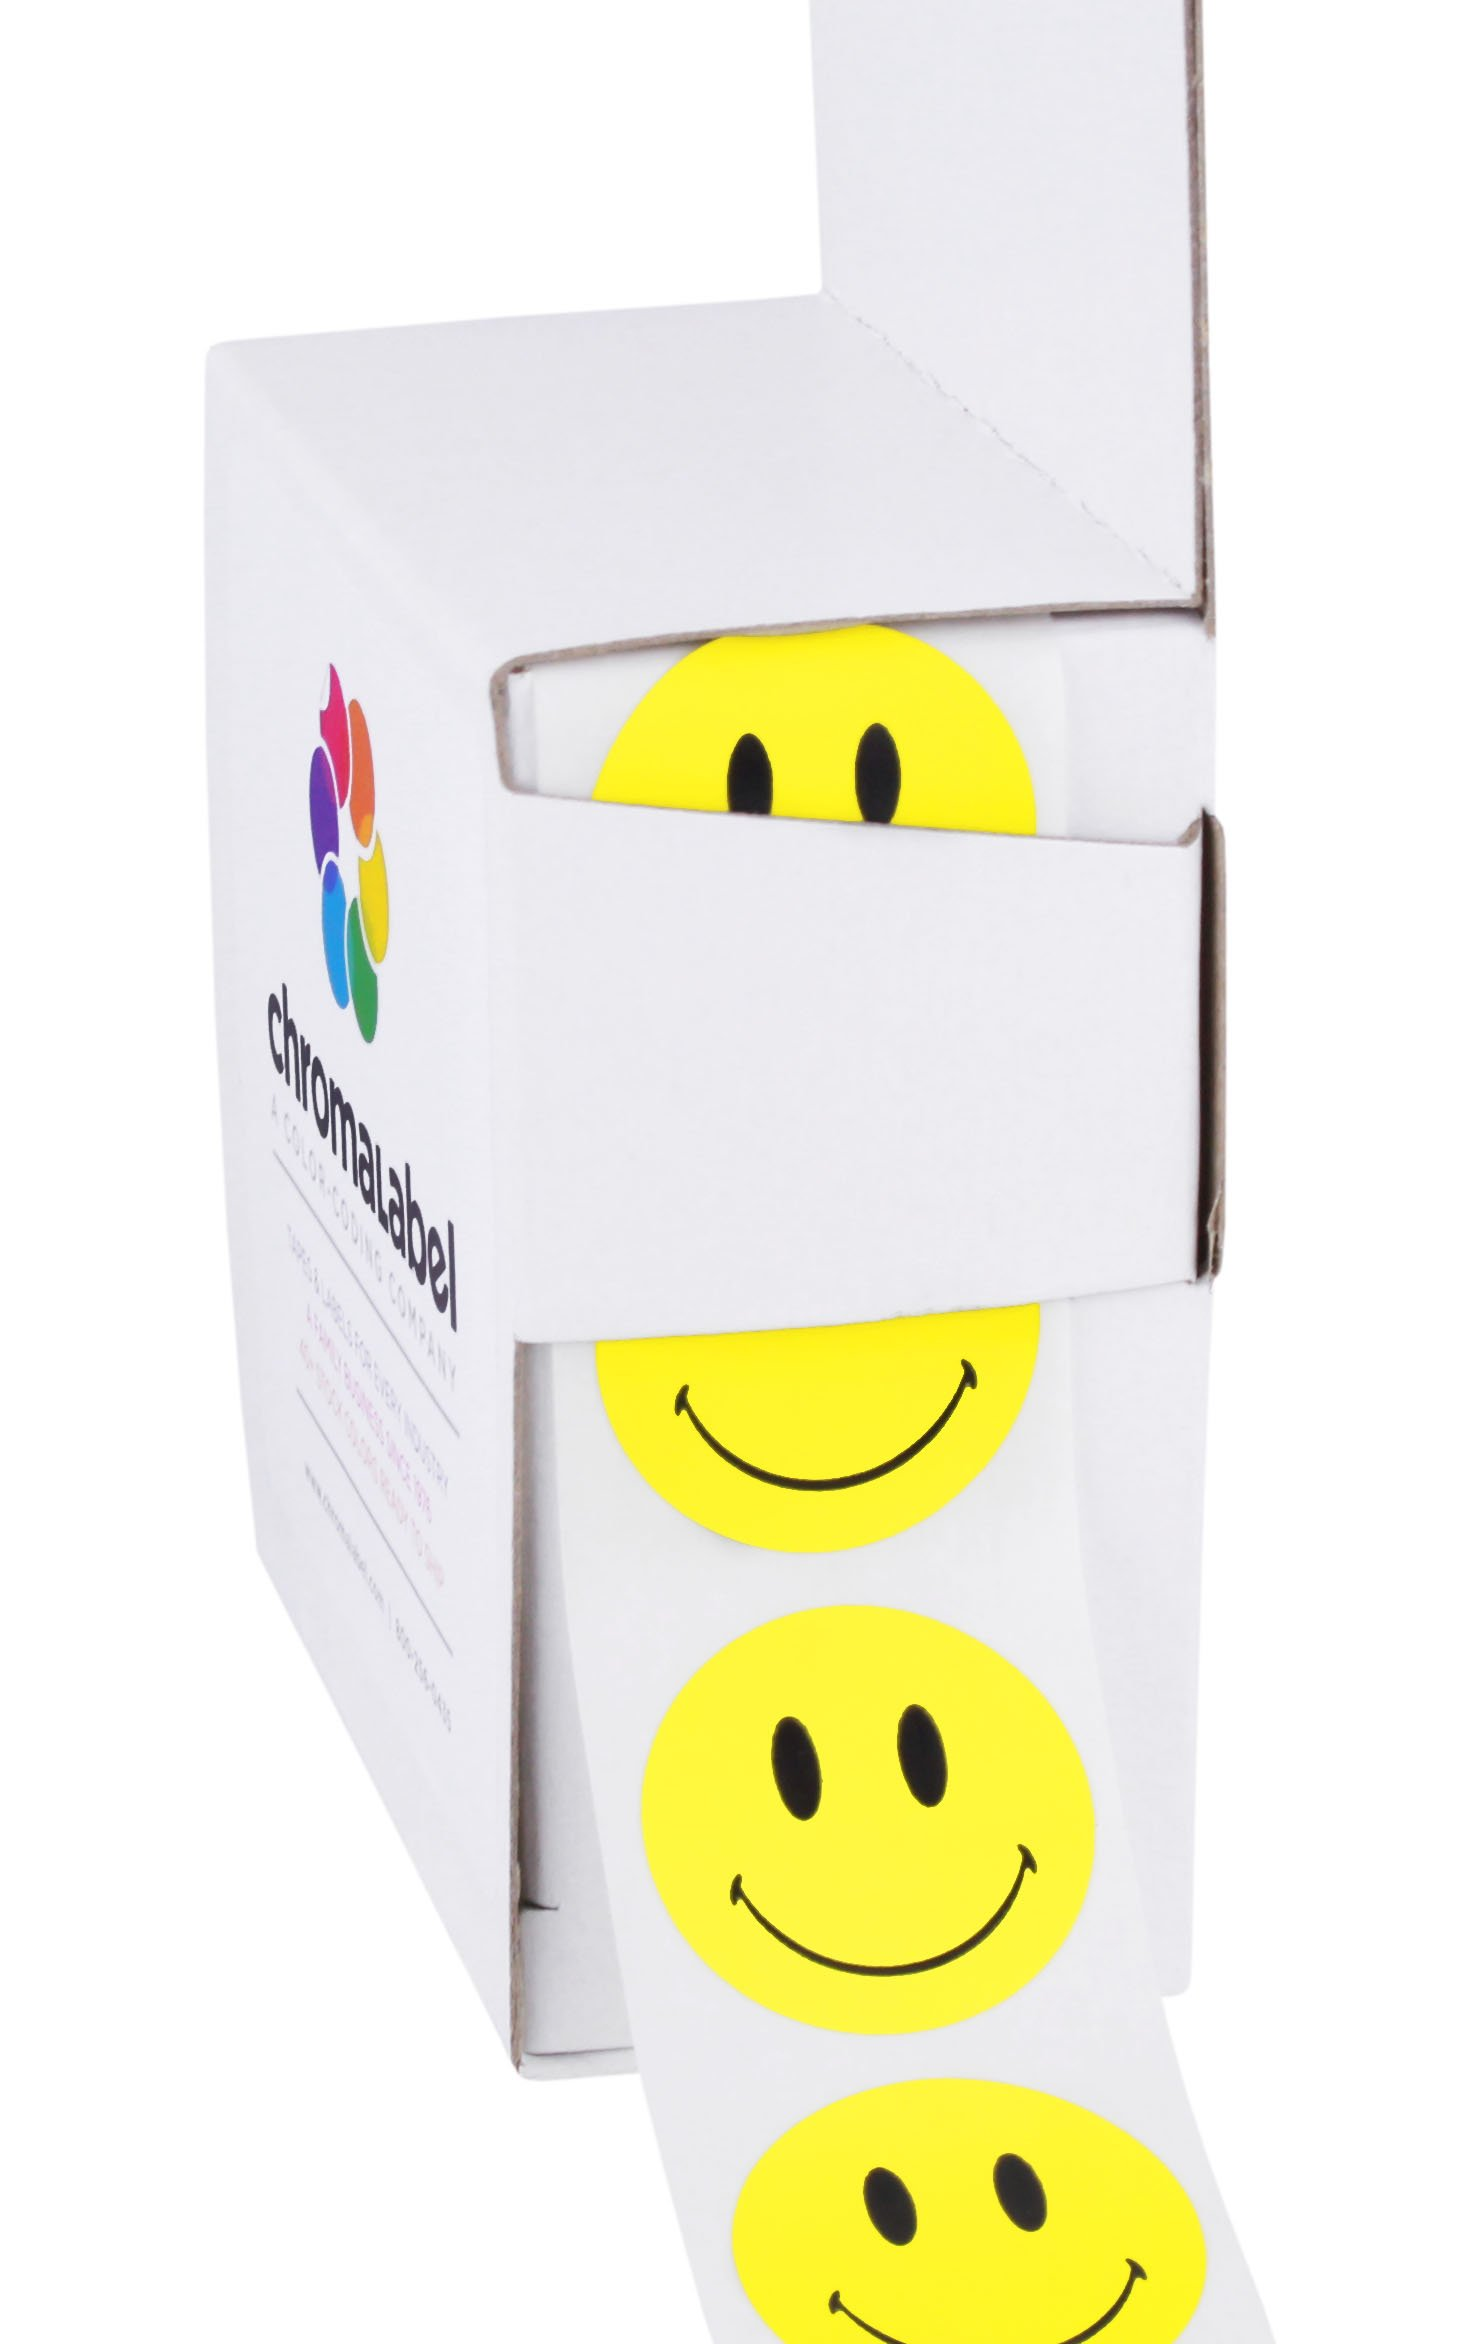 ChromaLabel Smiley Face Stickers   1,000/Dispenser Box (1 inch)